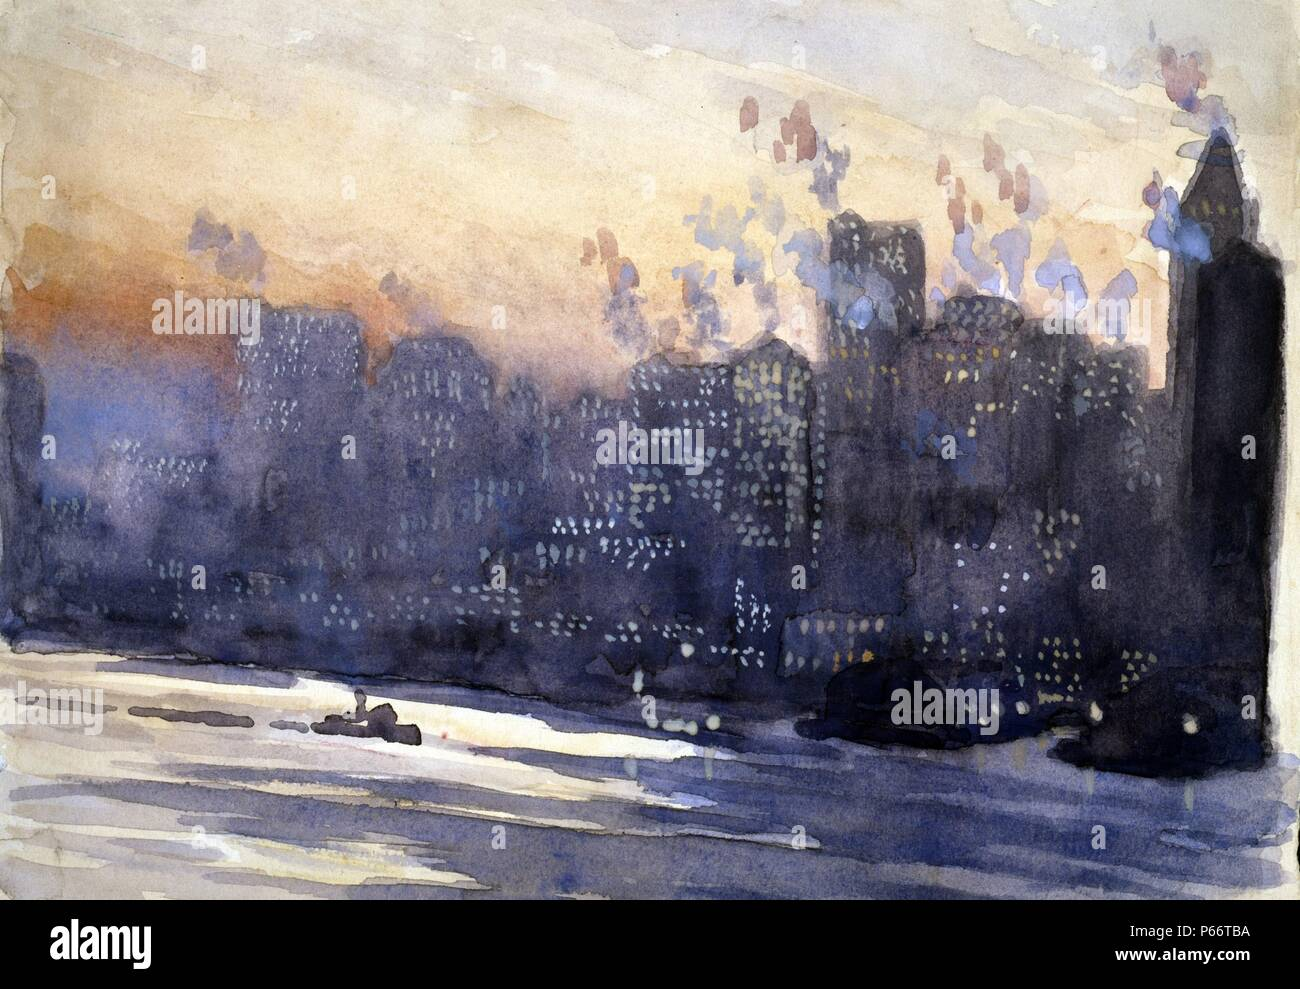 New York City harbour and skyline at night, by Joseph Pennell, 1857-1926, artist painted between ca. 1921 and 1926. drawing on cream paper, in watercolour, gouache. New York City. Diagonal view across East River to tall buildings of Manhattan, red glow of sunset above, dots of light in many of the windows. - Stock Image